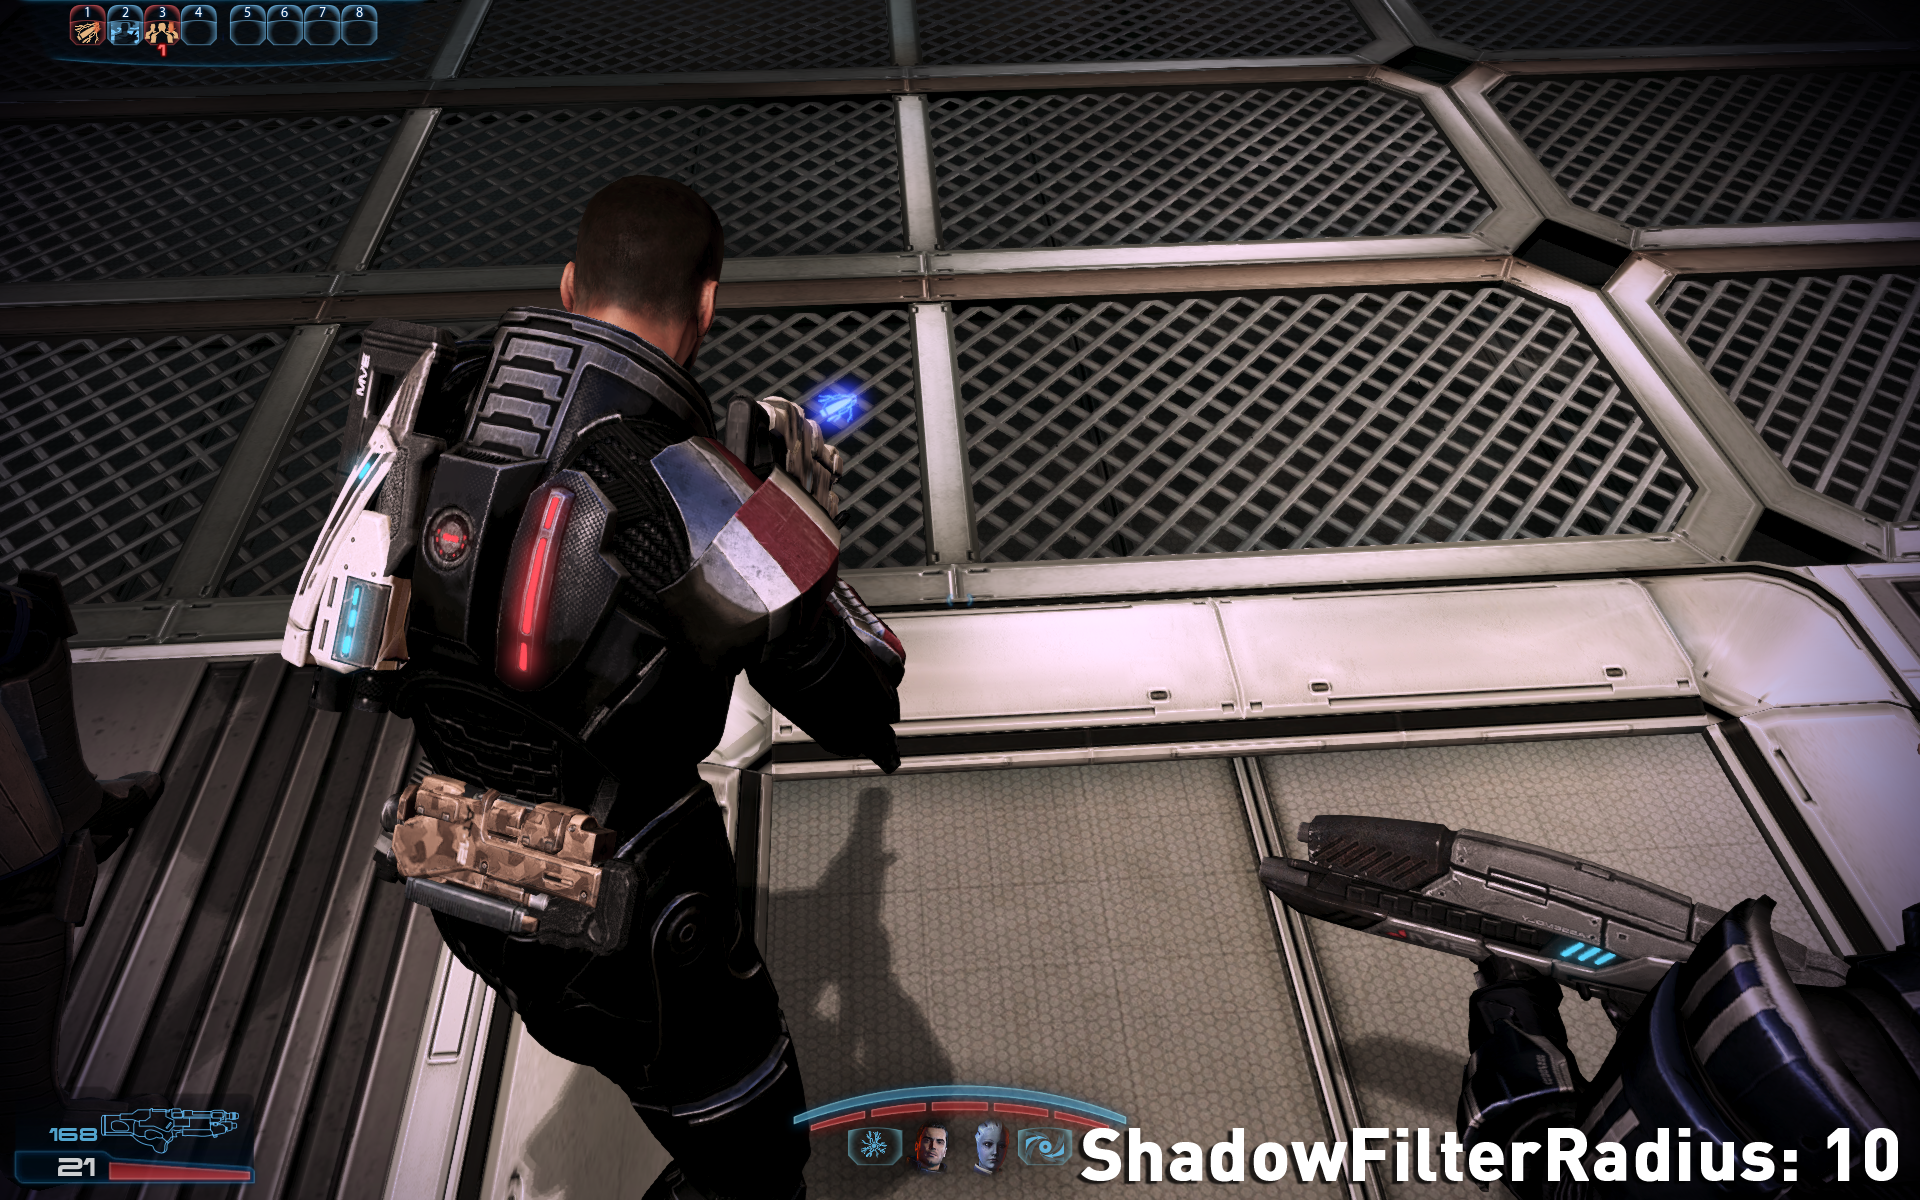 Mass effect 3 download patch erotic movie